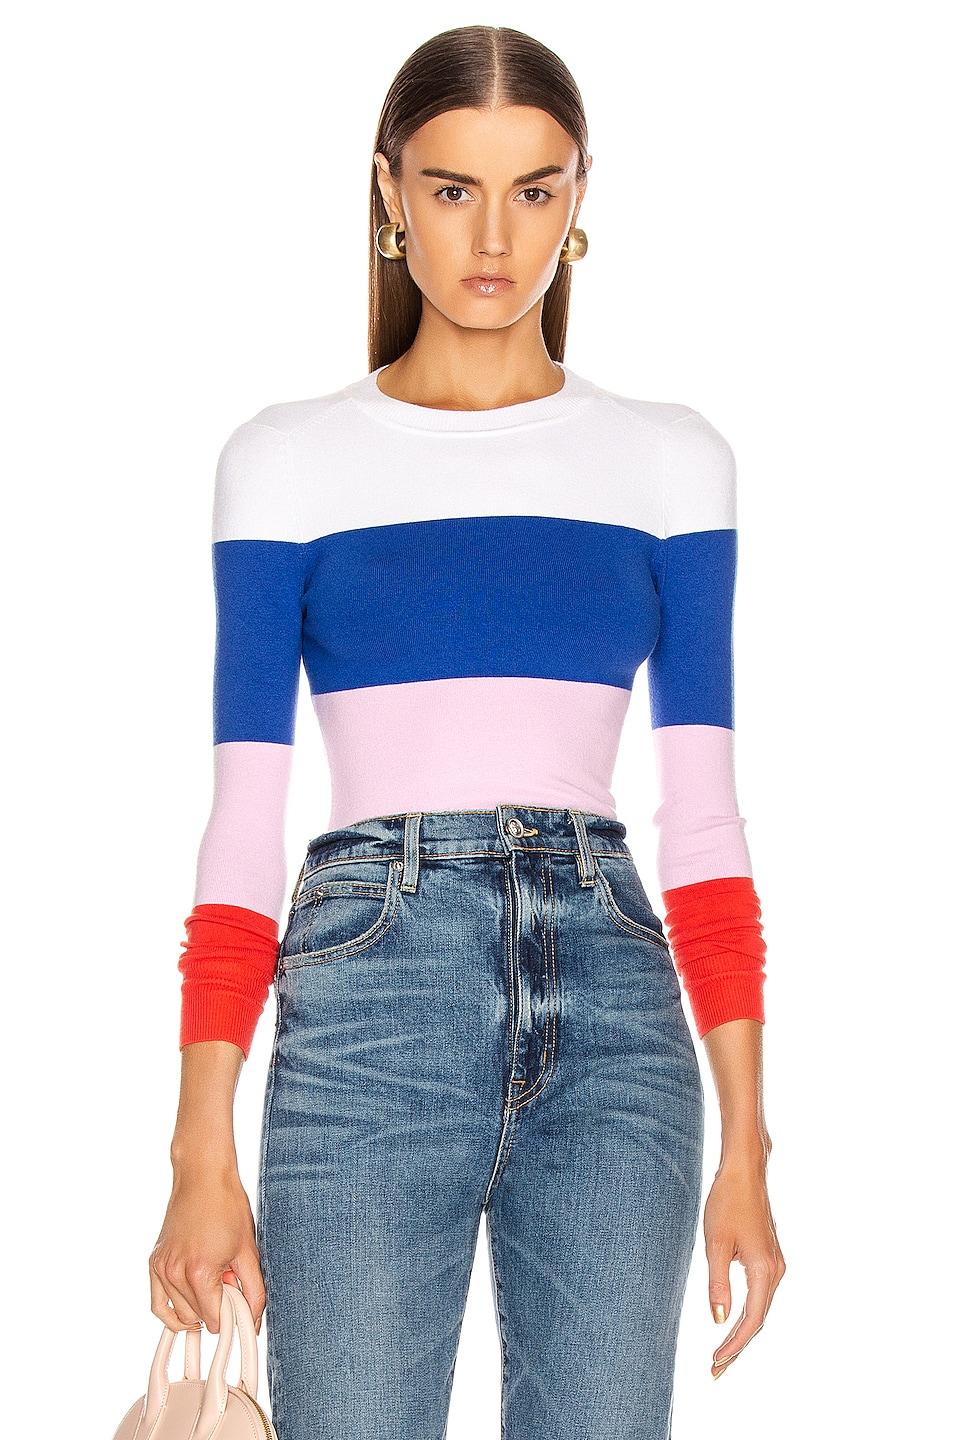 Image 1 of JoosTricot Long Sleeve Crew Neck Sweater in Laser White, Ultramarine, Wild Rose & Fire Poppy